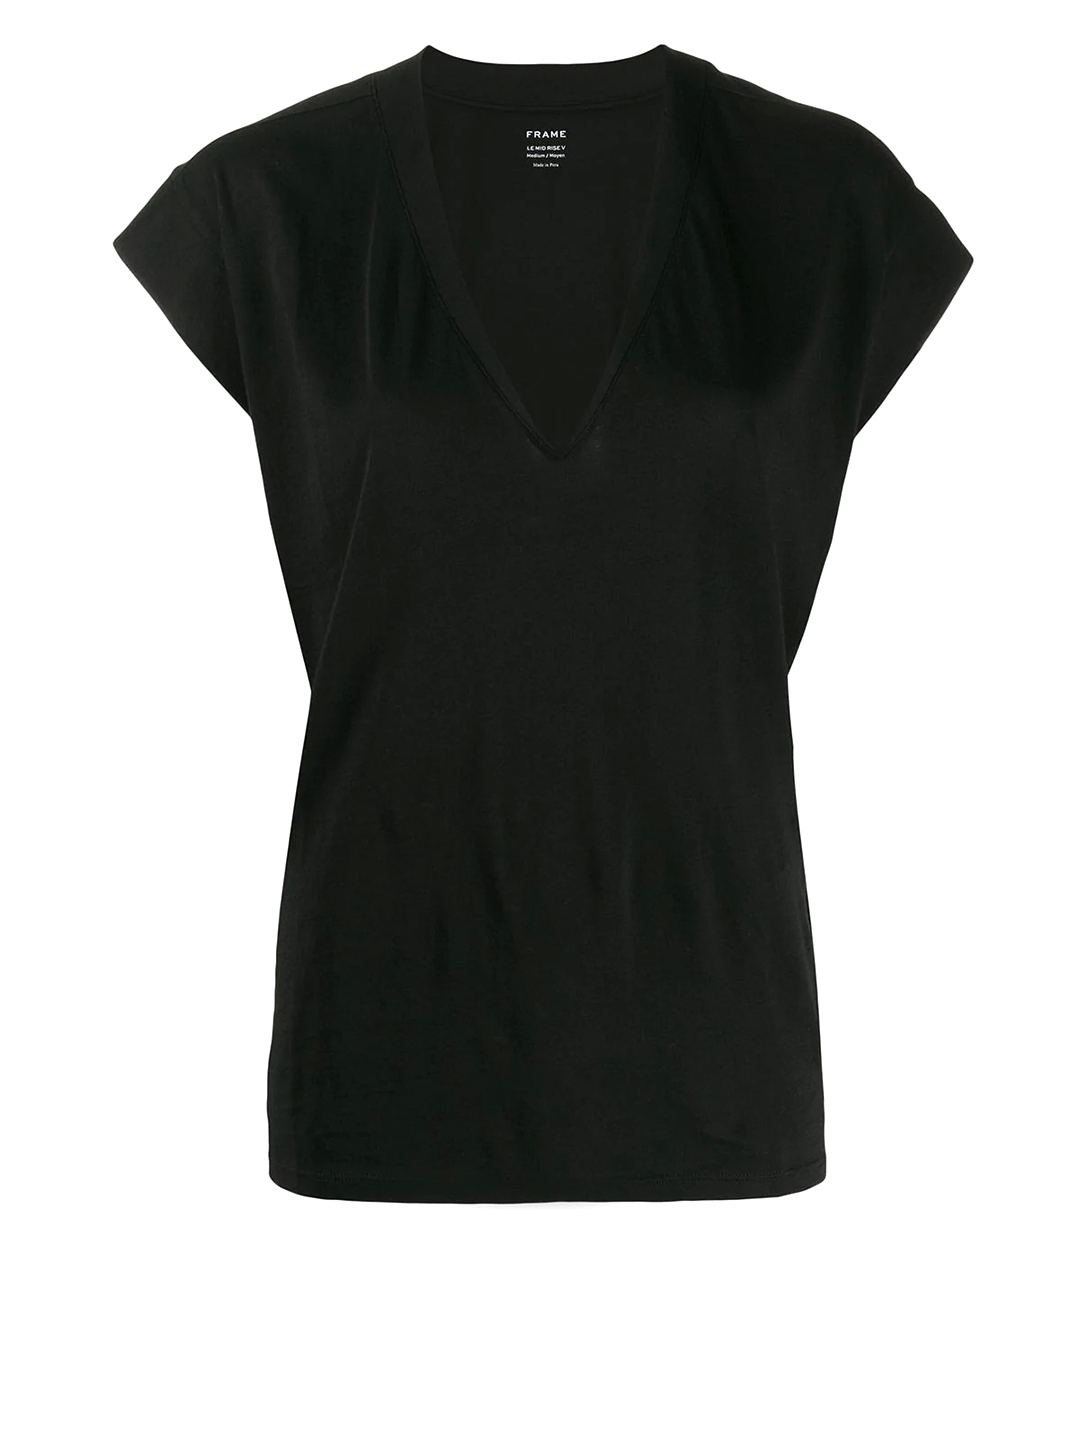 FRAME Le Mid Rise V-Neck T-Shirt Women's Black